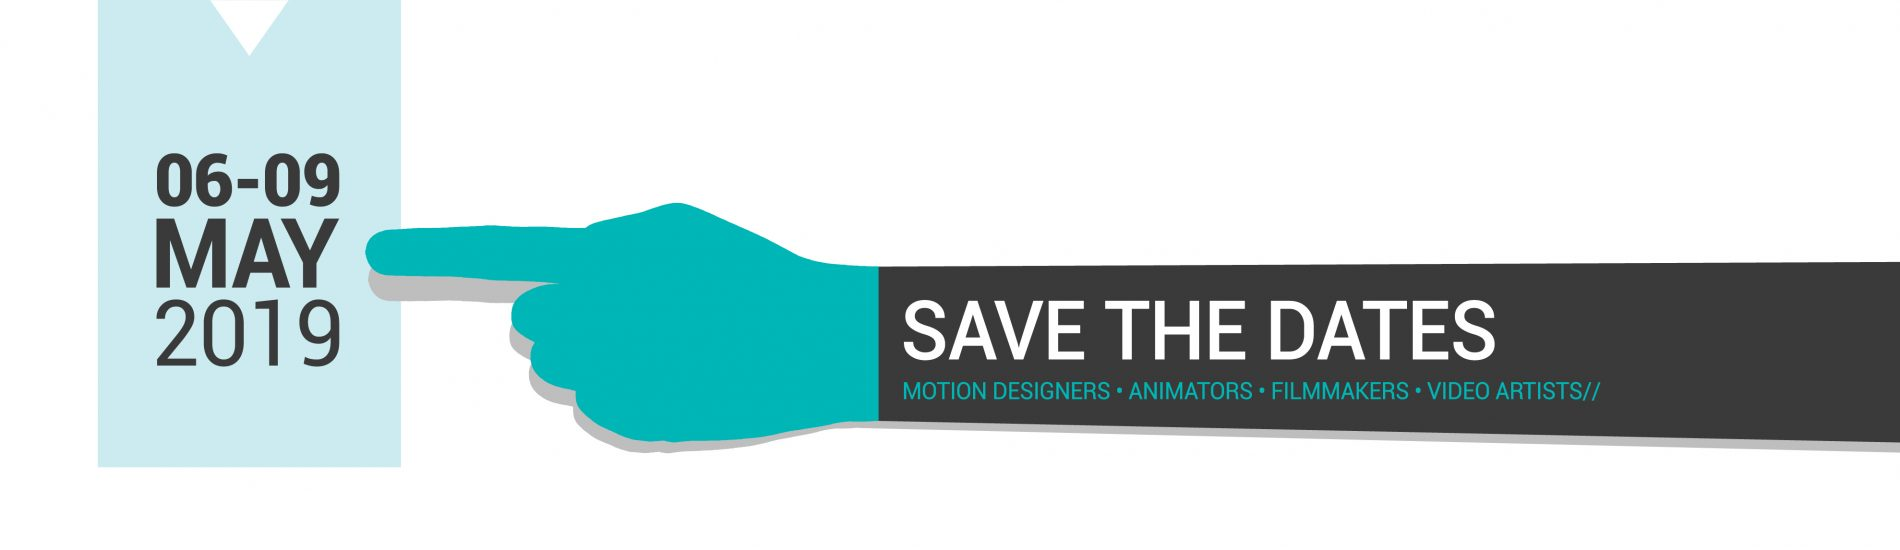 SAVE THE DATE BANNER NEW-02